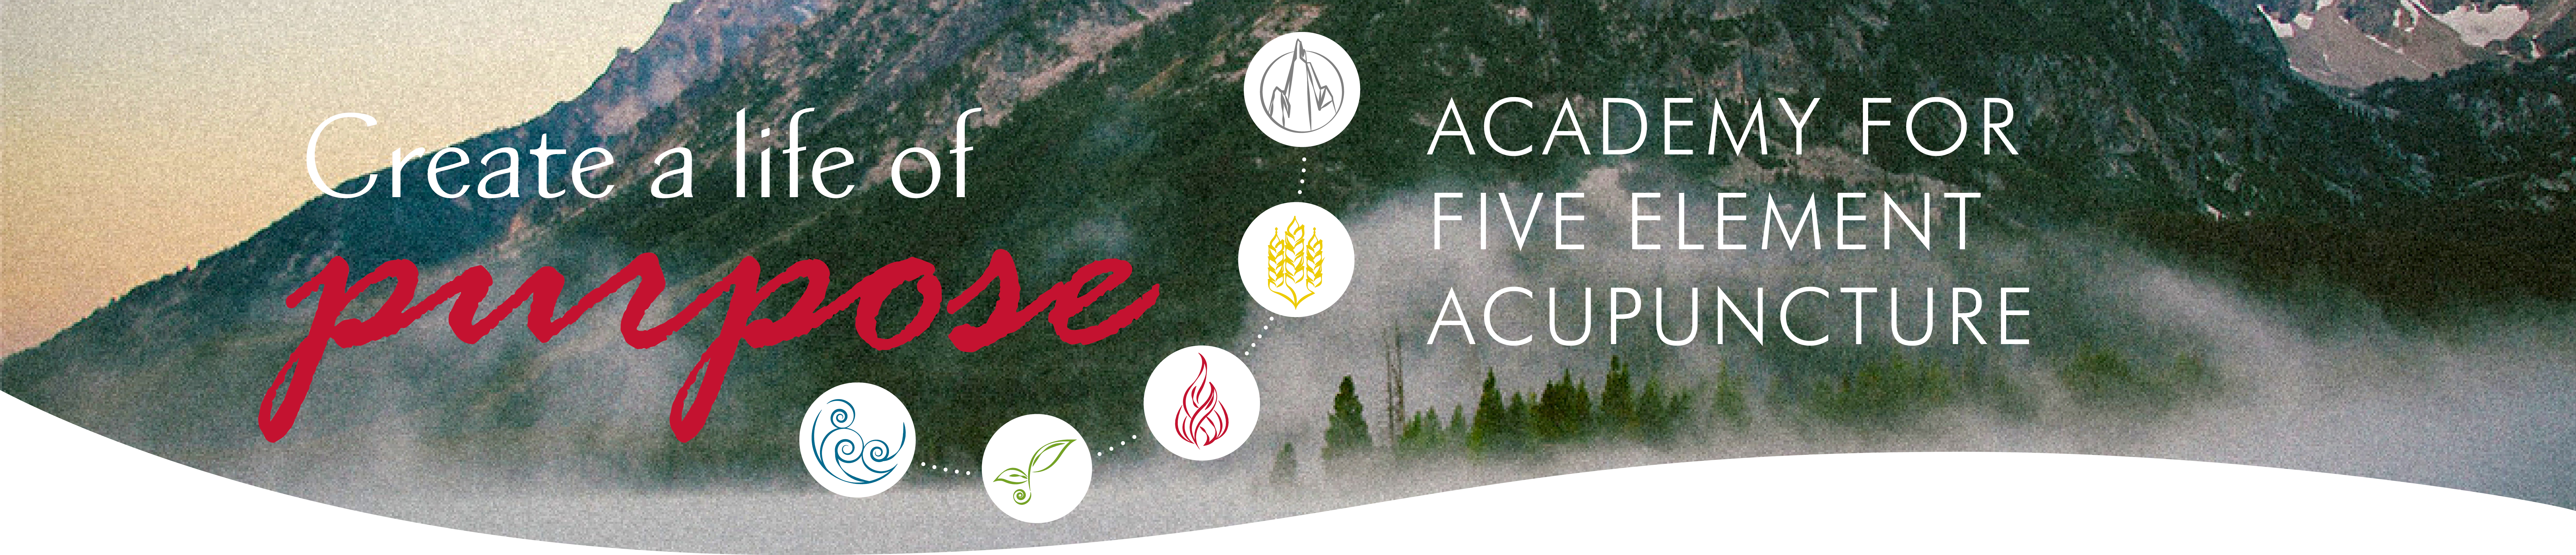 Academy for Five Element Acupuncture